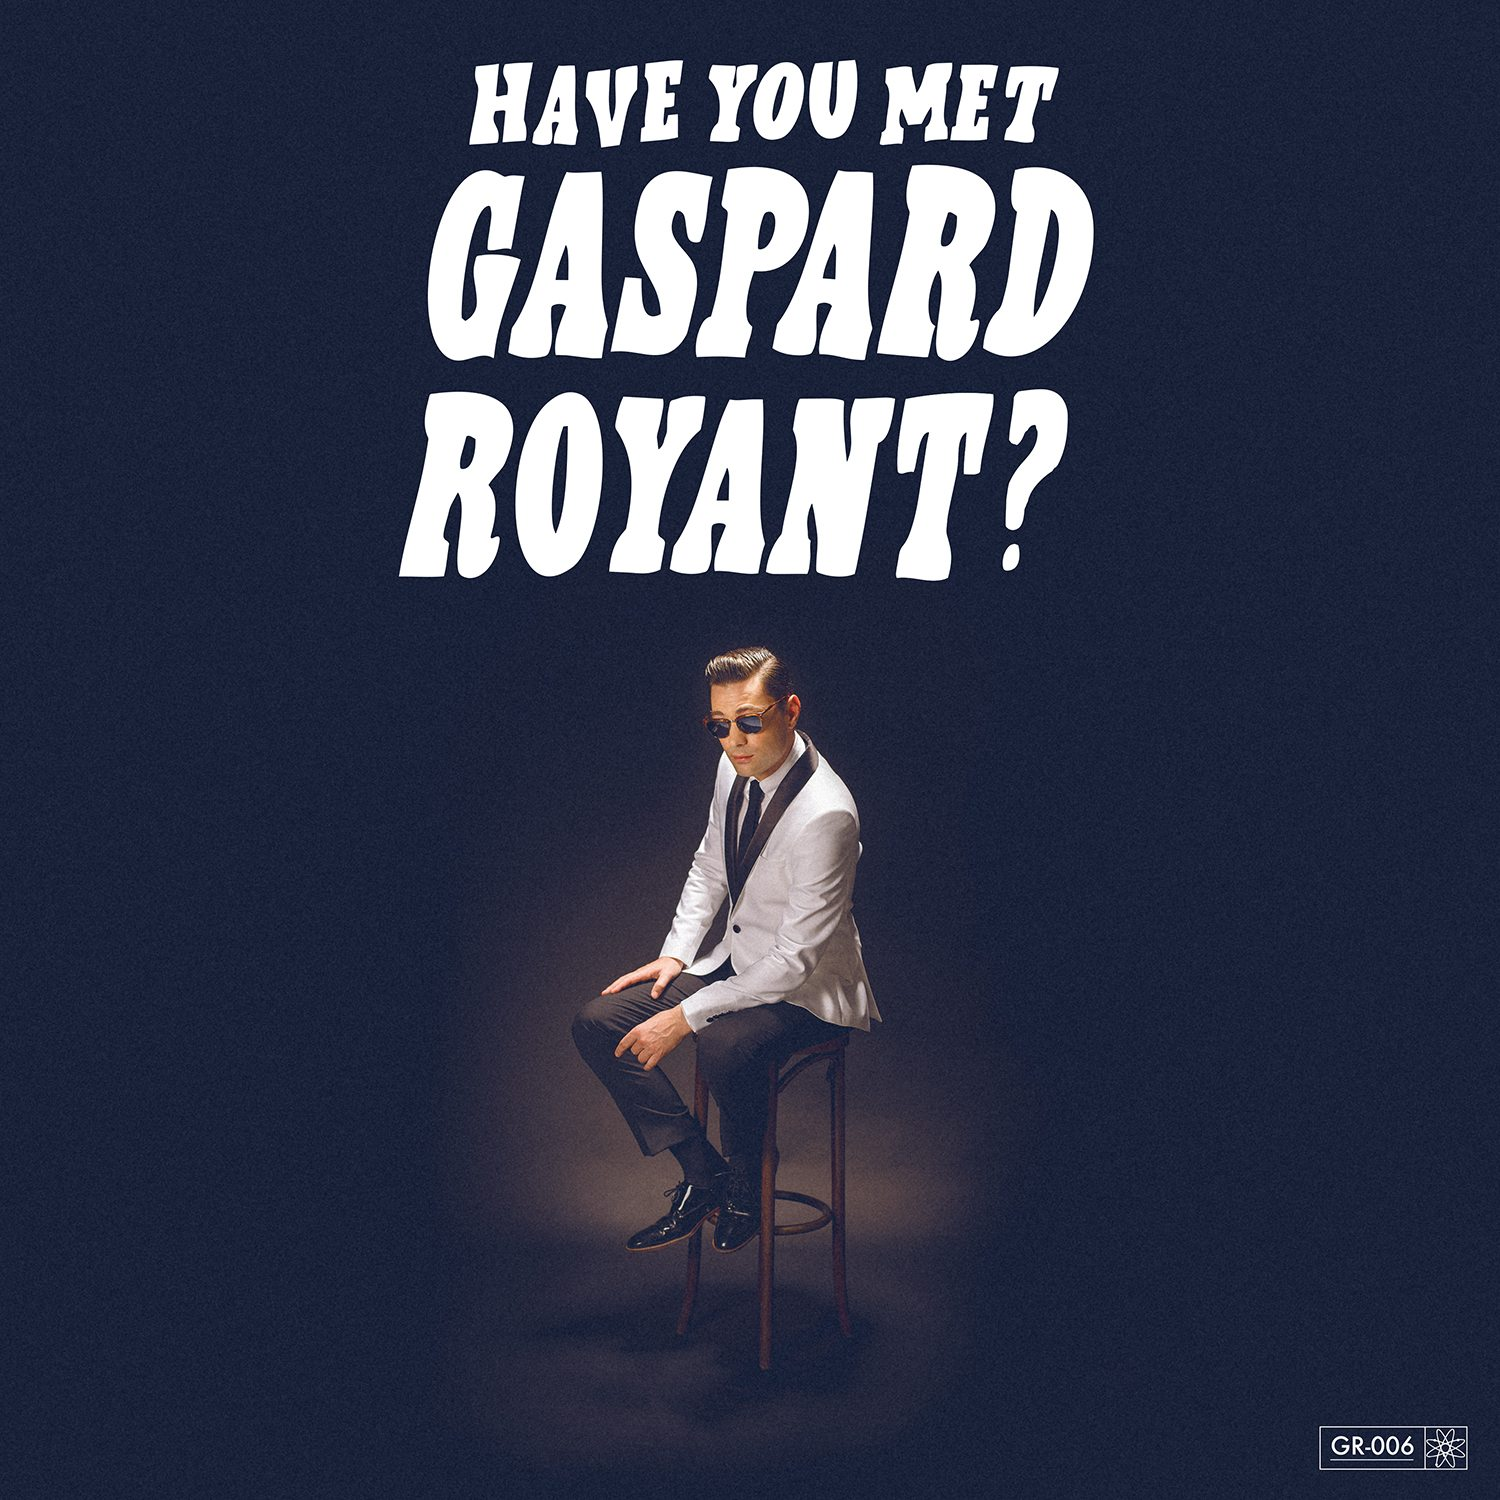 gaspard royant,have you met